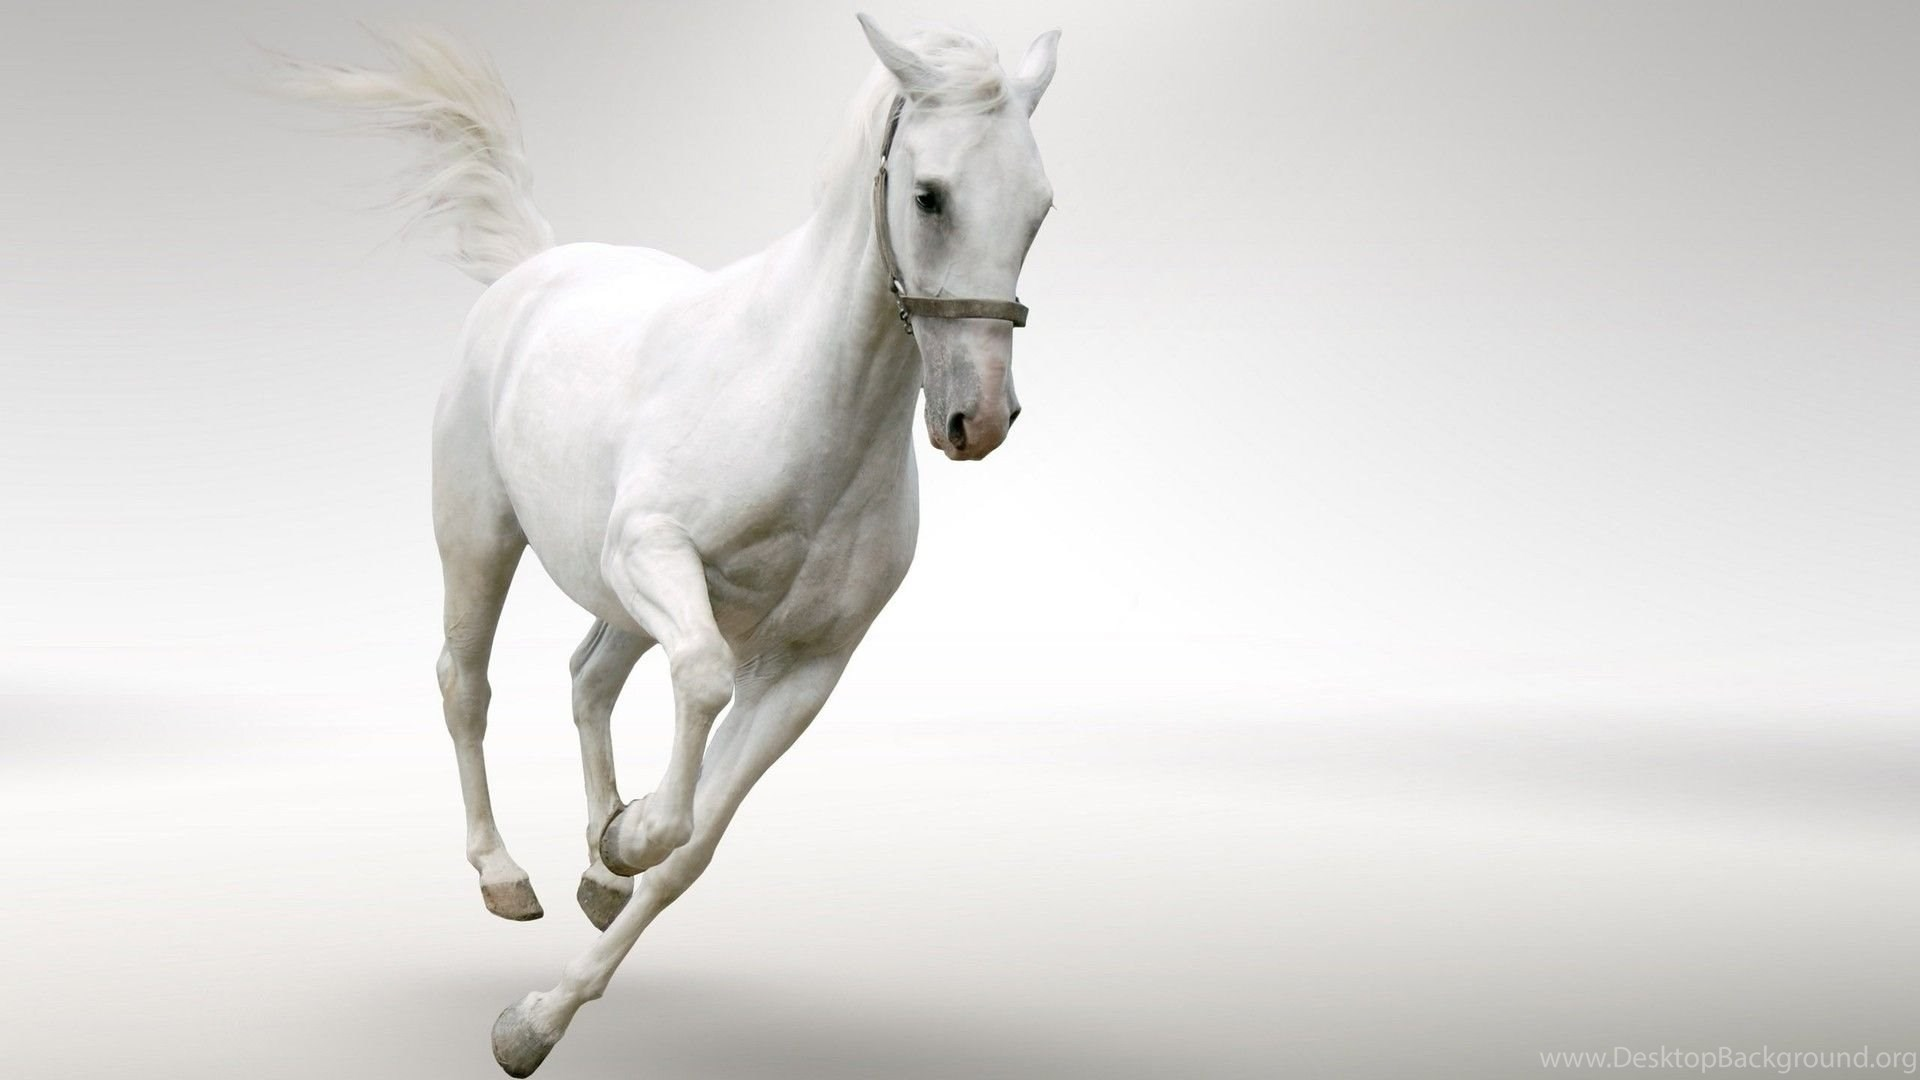 White Horse Full Hd Desktop Wallpapers And Backgrounds Image Images, Photos, Reviews